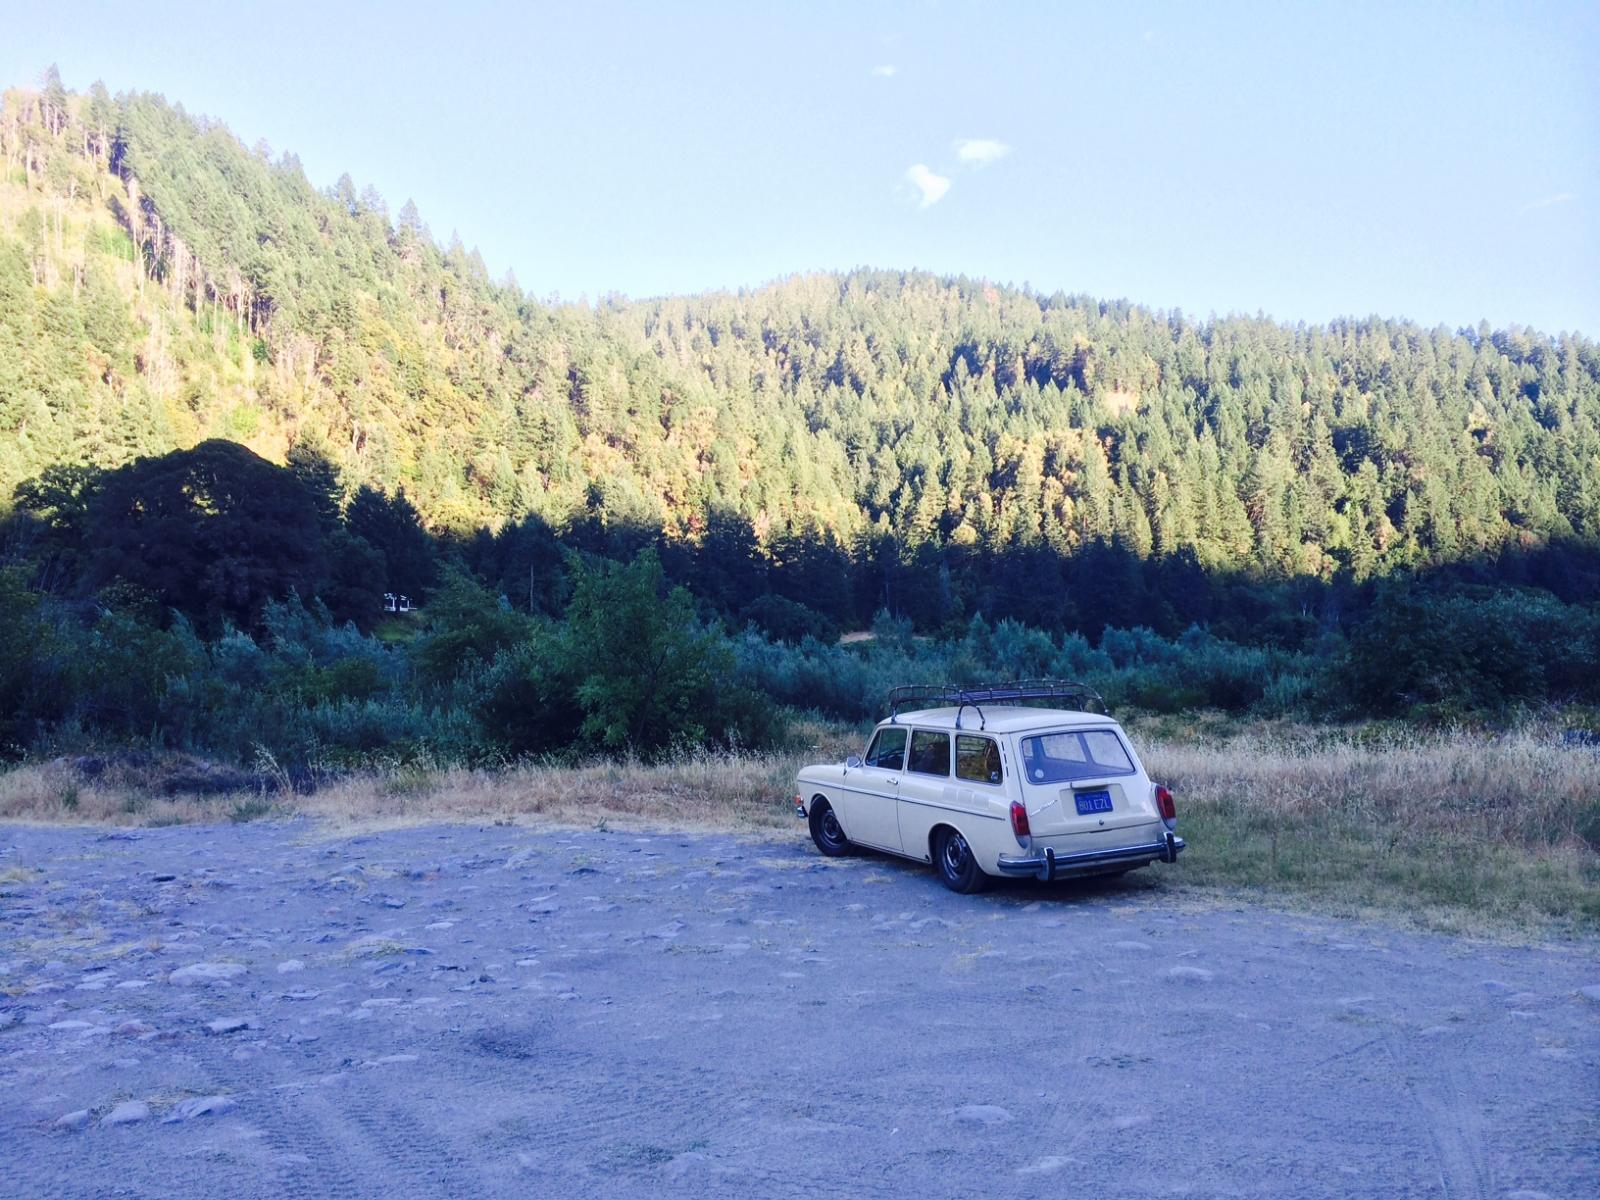 Squareback in the Six Rivers National Forest